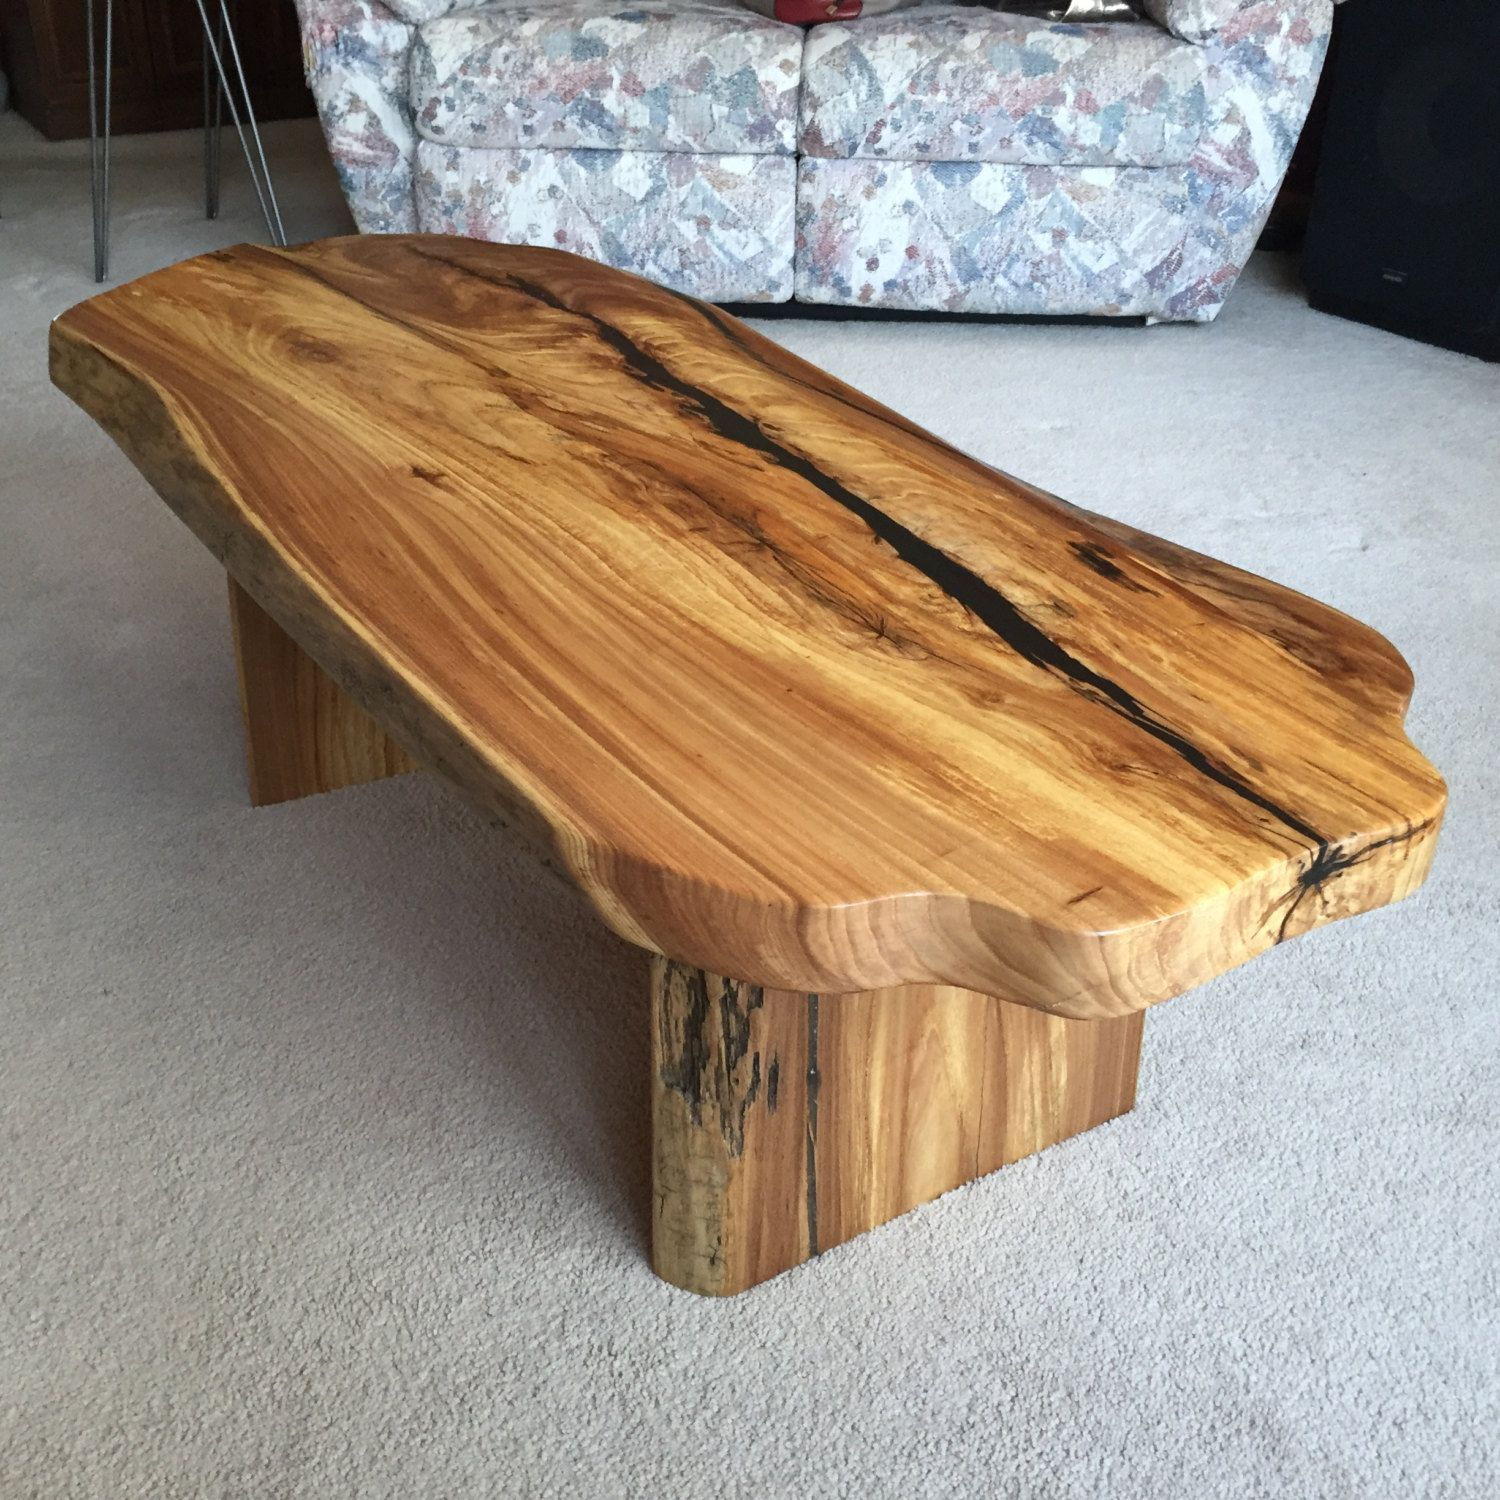 Gorgeous Unique Live Edge Coffe Table With Live Edge Wood Slab Legs Beautiful Grain Patterns Coffee Table Wood Live Edge Coffee Table Live Edge Dining Table